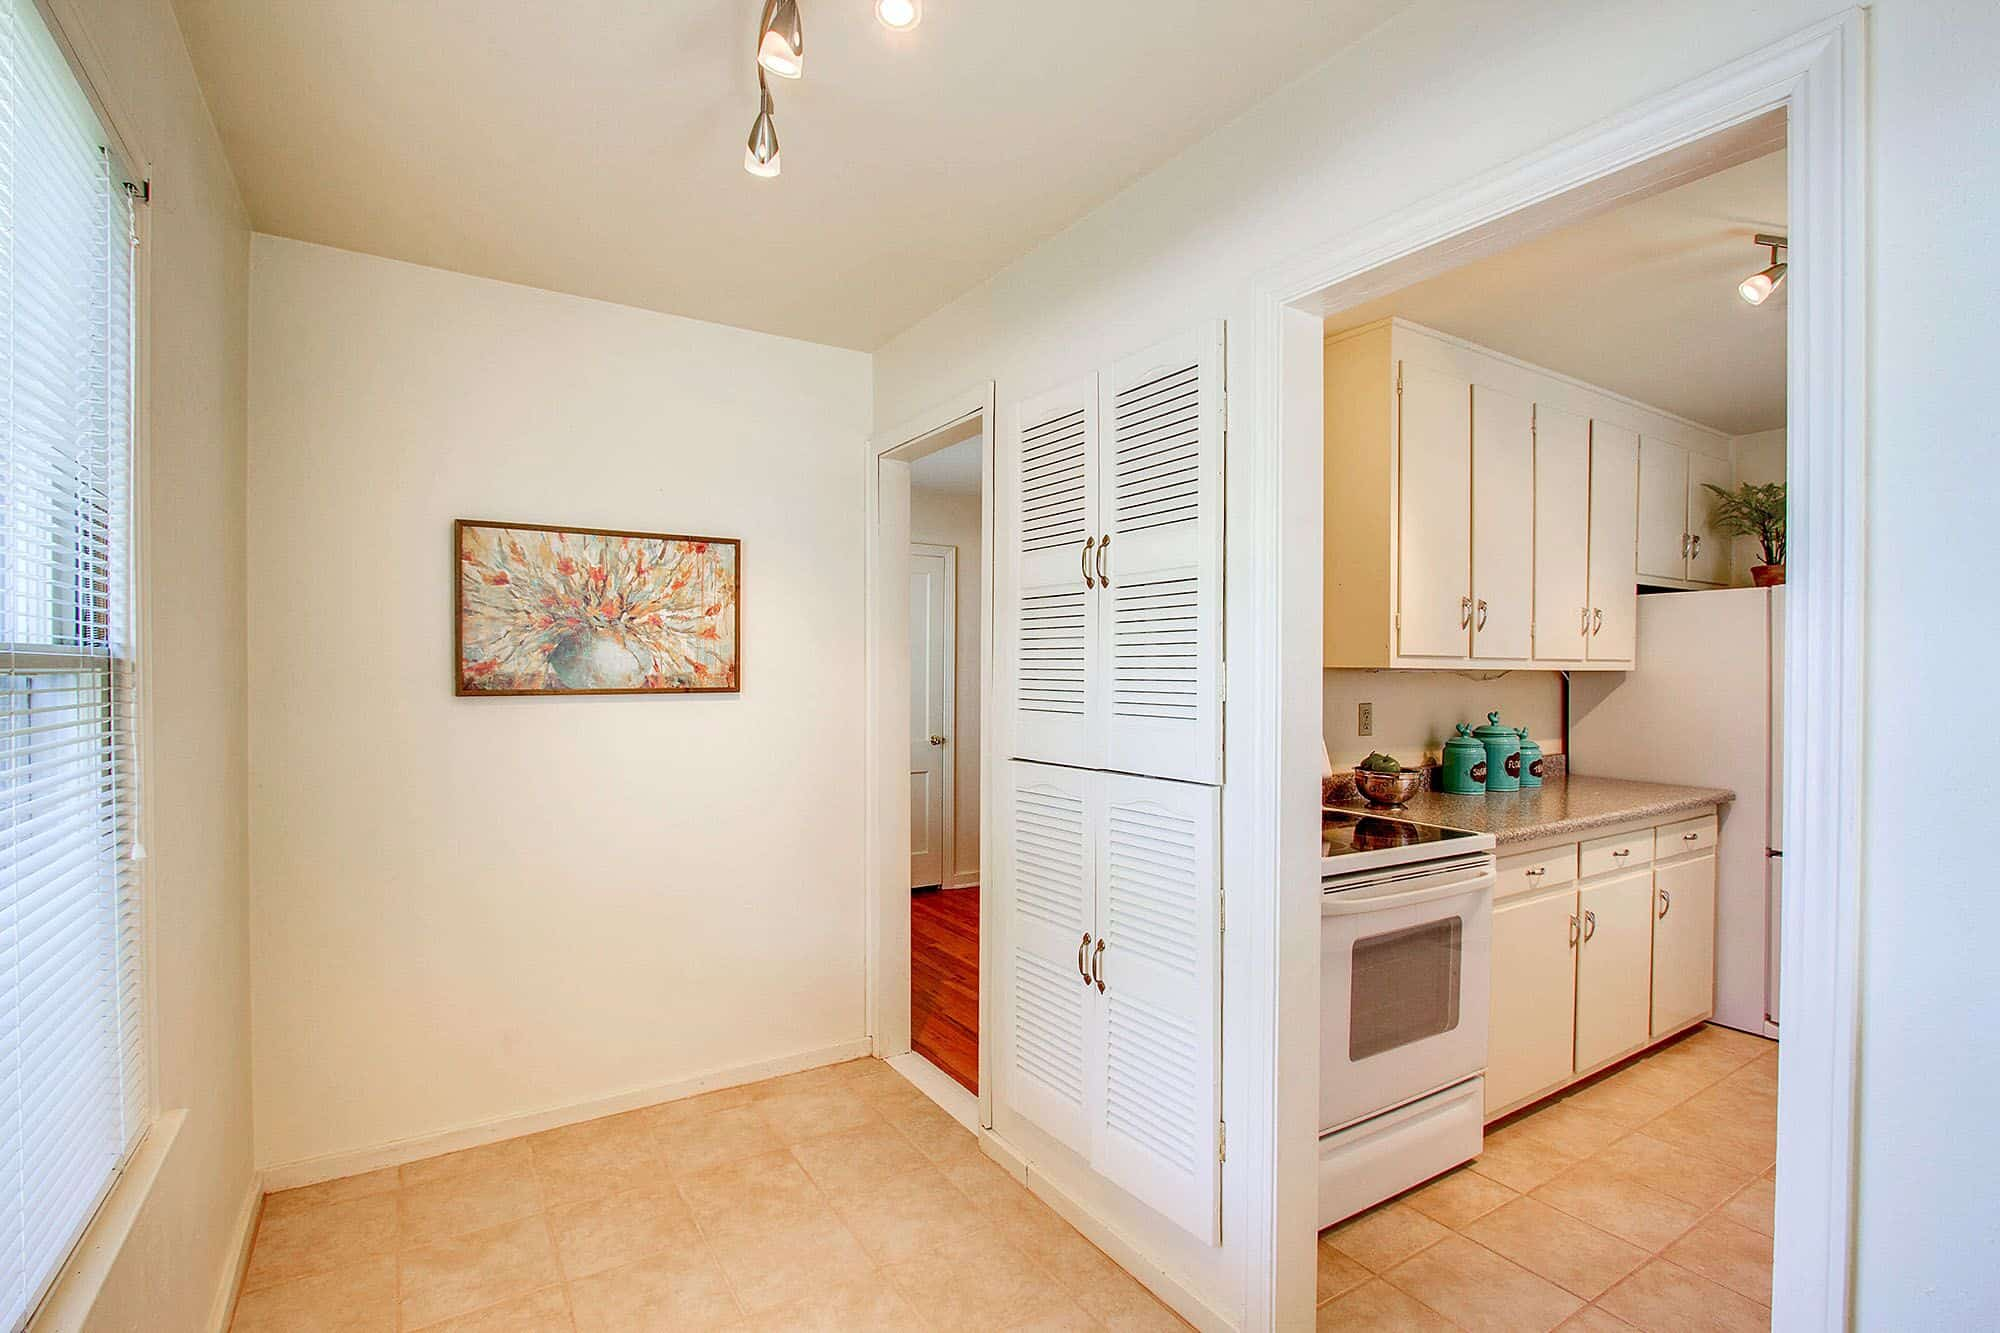 Pantry Cabinet in Mud Room off Kitchen